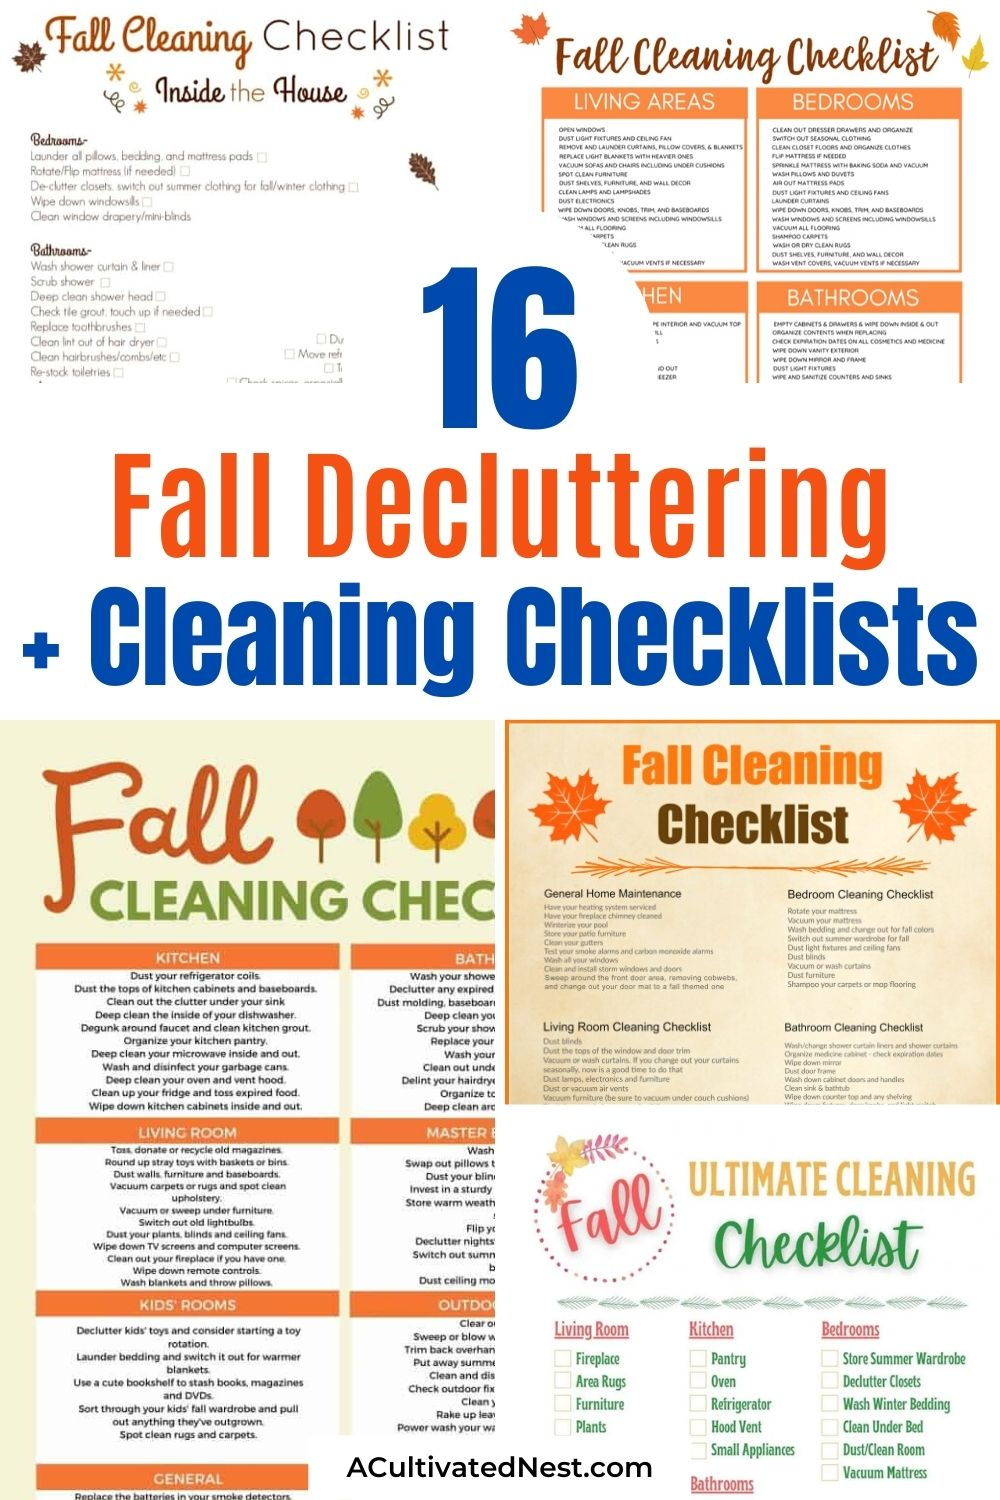 16 Fall Cleaning and Decluttering Free Printables- Fall is the perfect time to get your home neat and tidy before the busy holiday season. To help make that task easier, you need these free printable cleaning and decluttering checklists for fall! There are so many helpful ones to choose from! | #cleaningSchedule #declutteringChecklist #freePrintable #organizingTips #ACultivatedNest